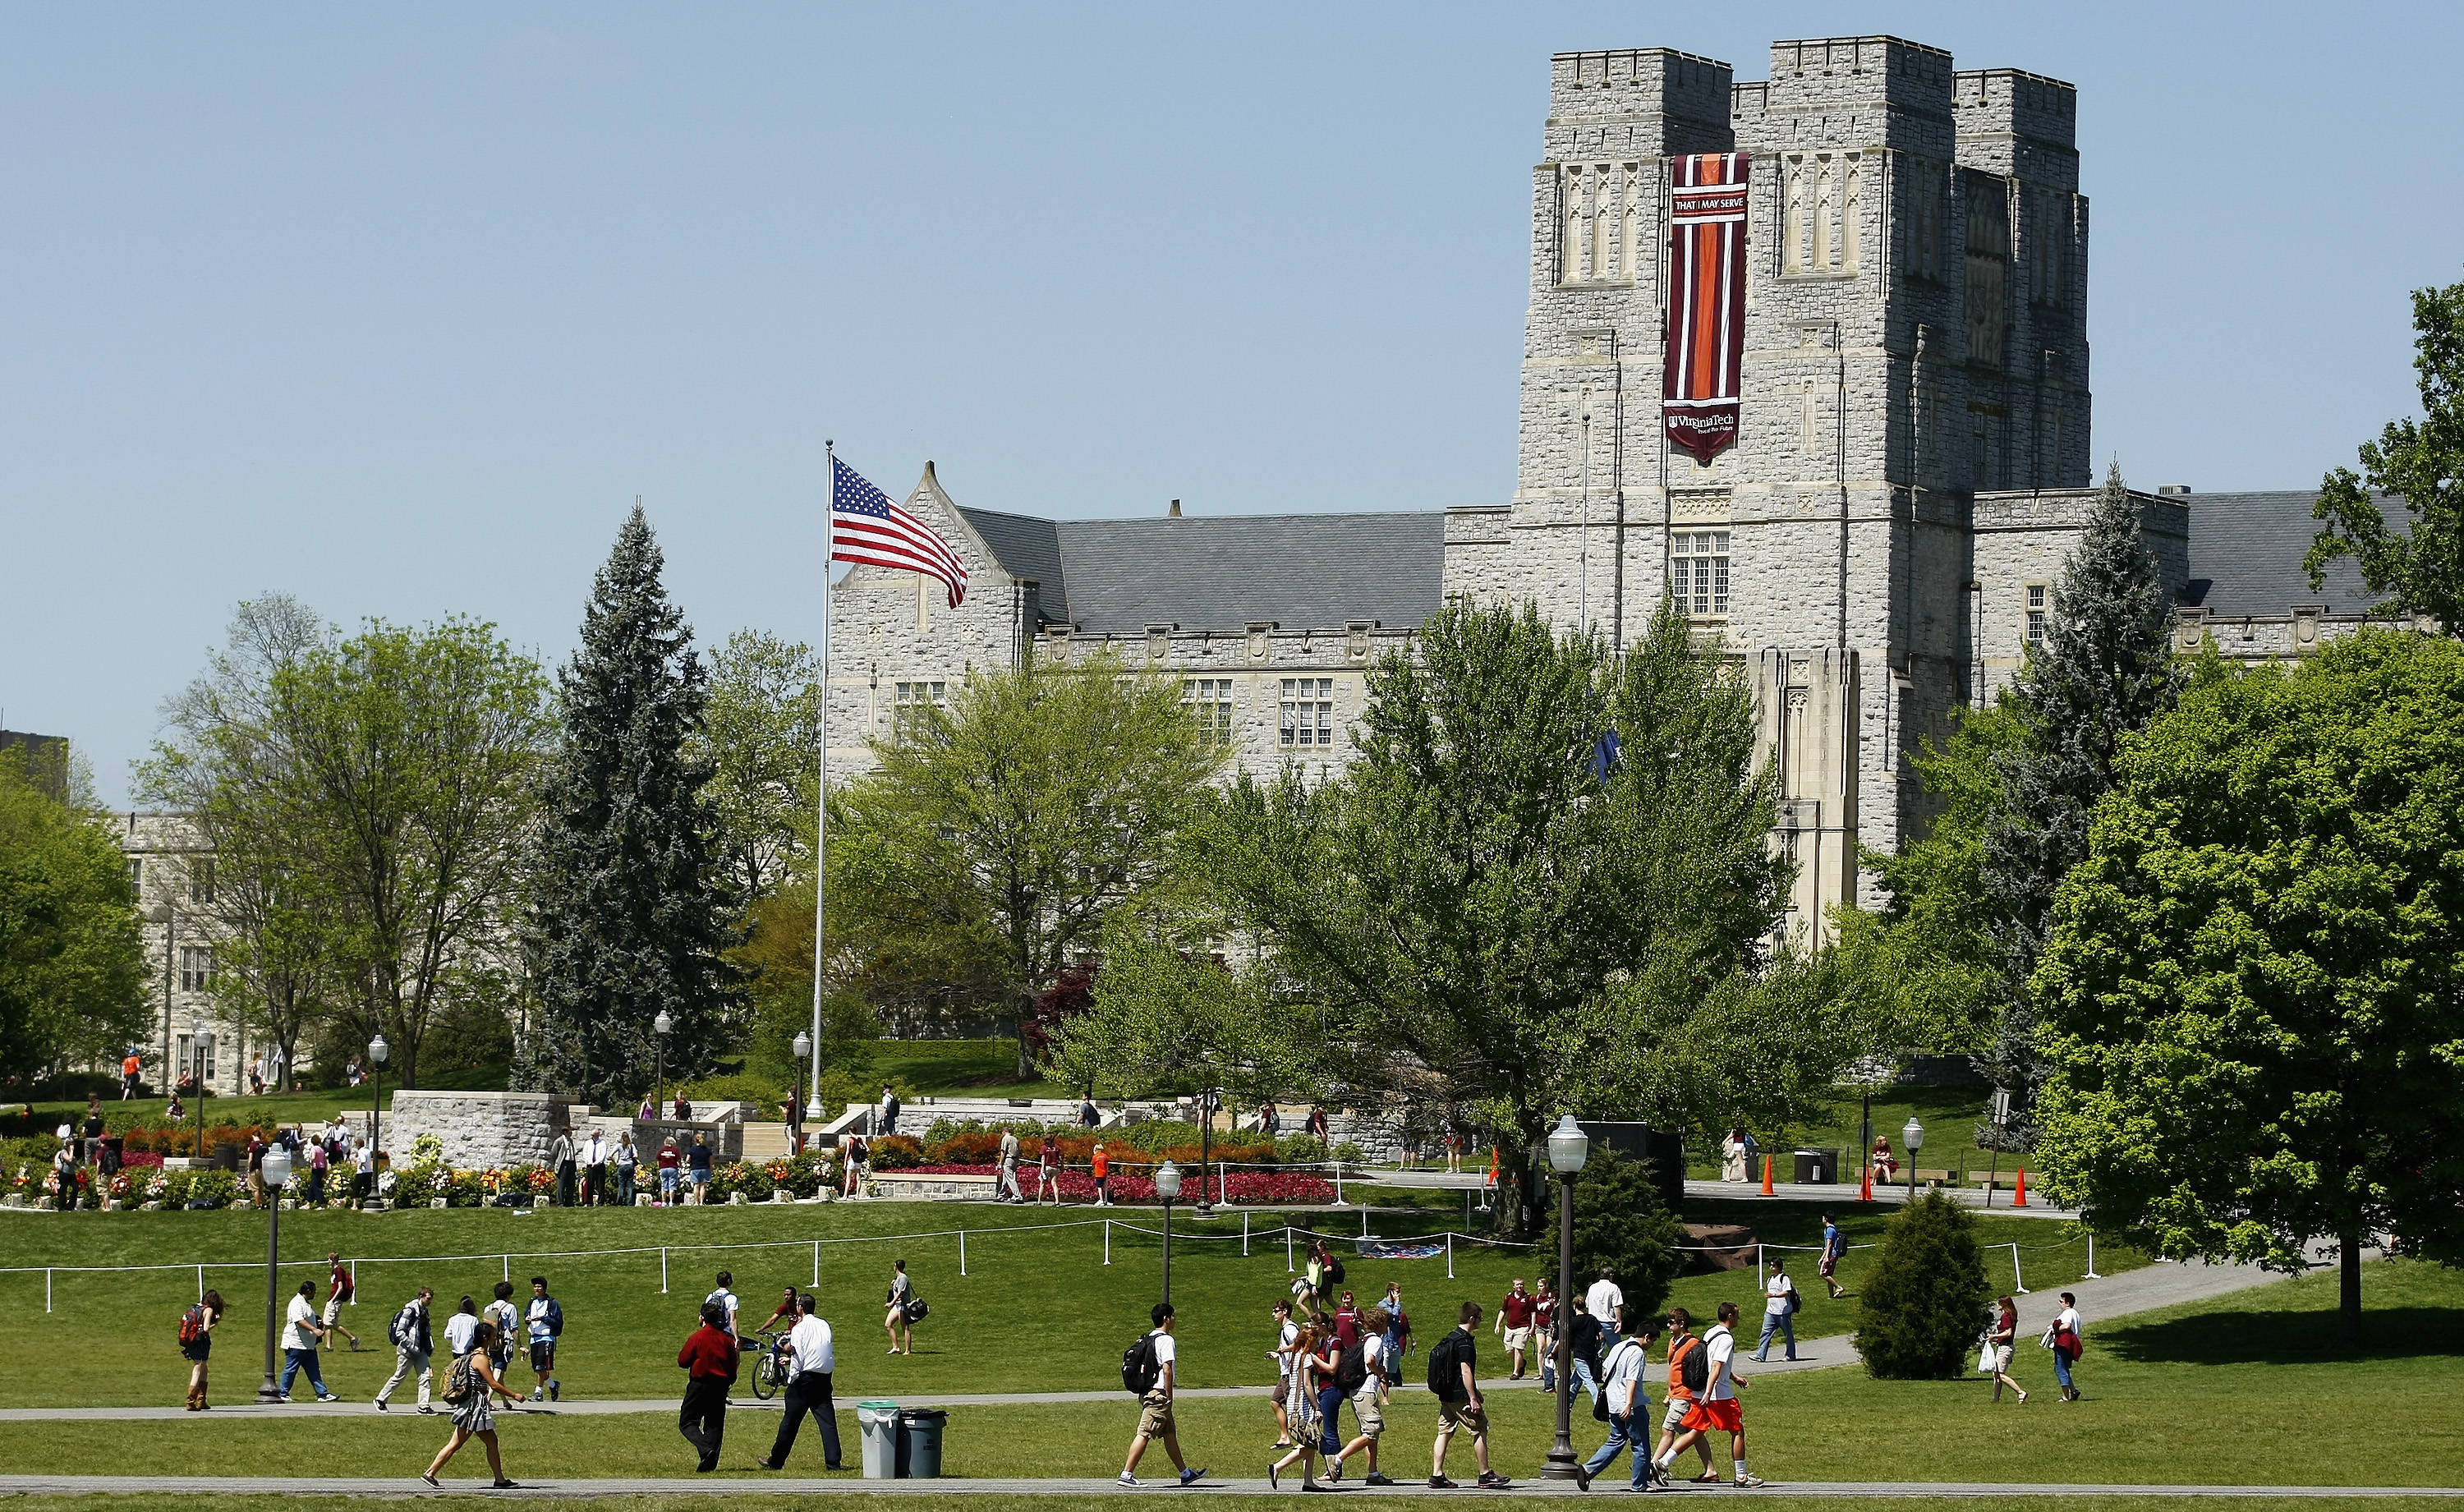 us news best colleges - HD1440×884